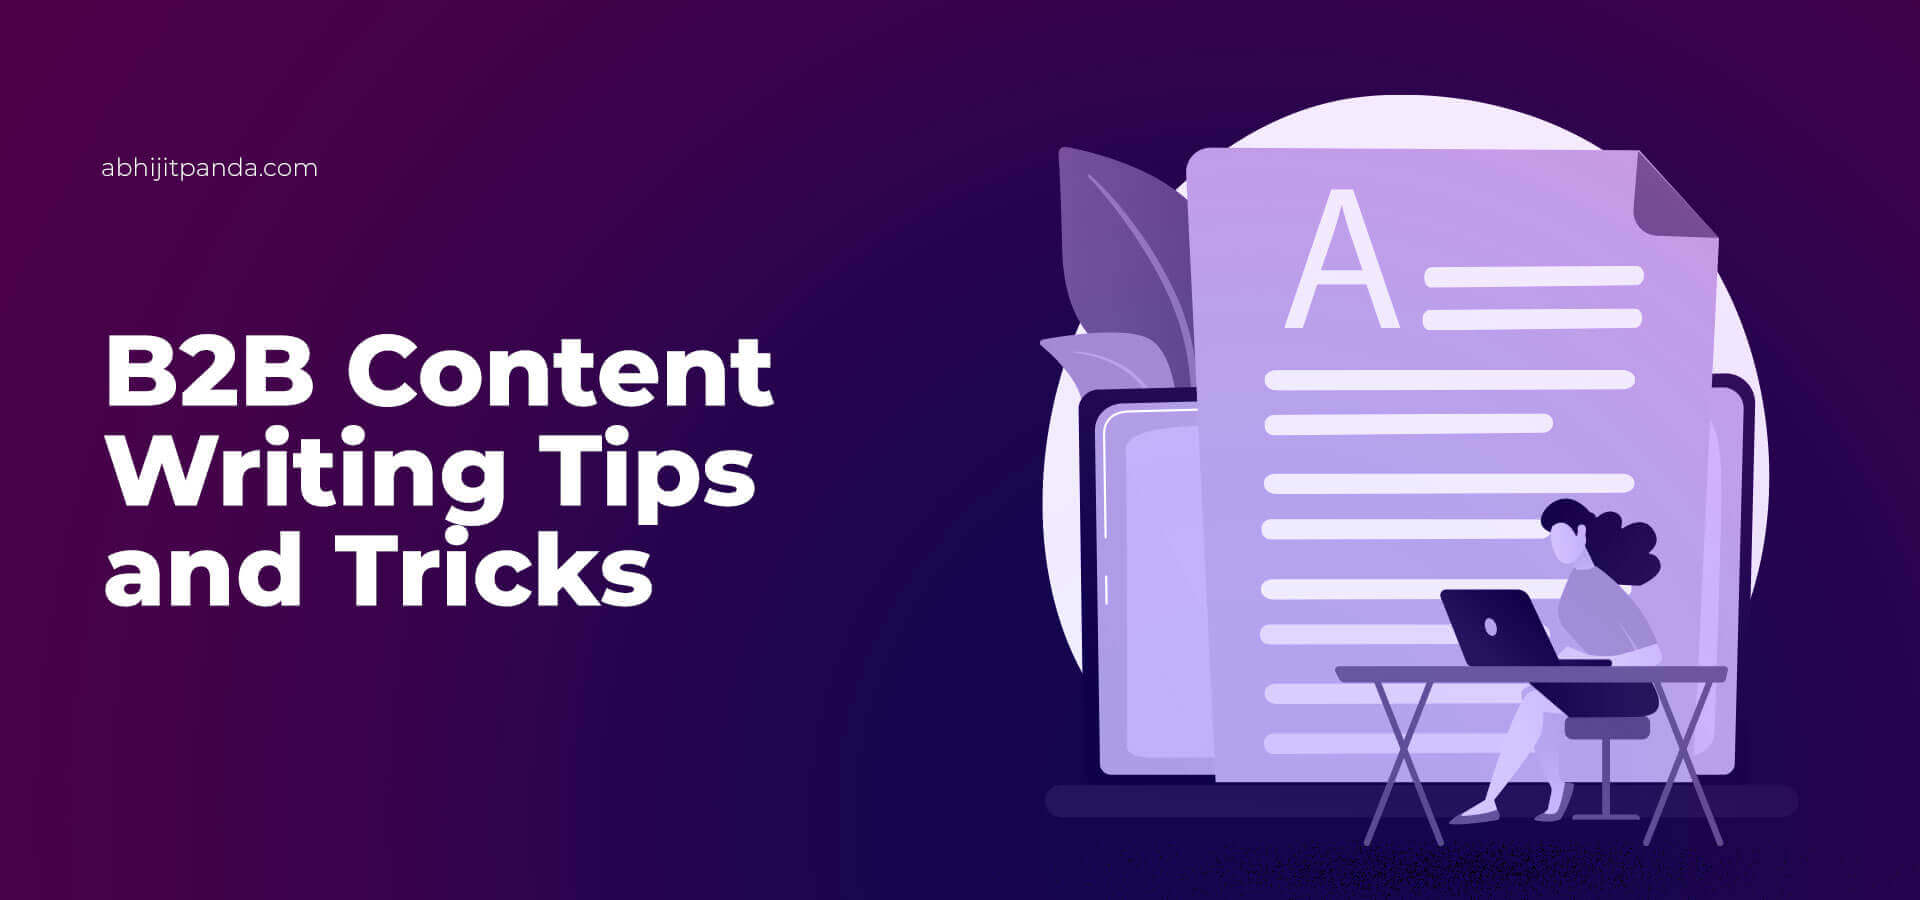 B2B Content Writing Tips and Tricks